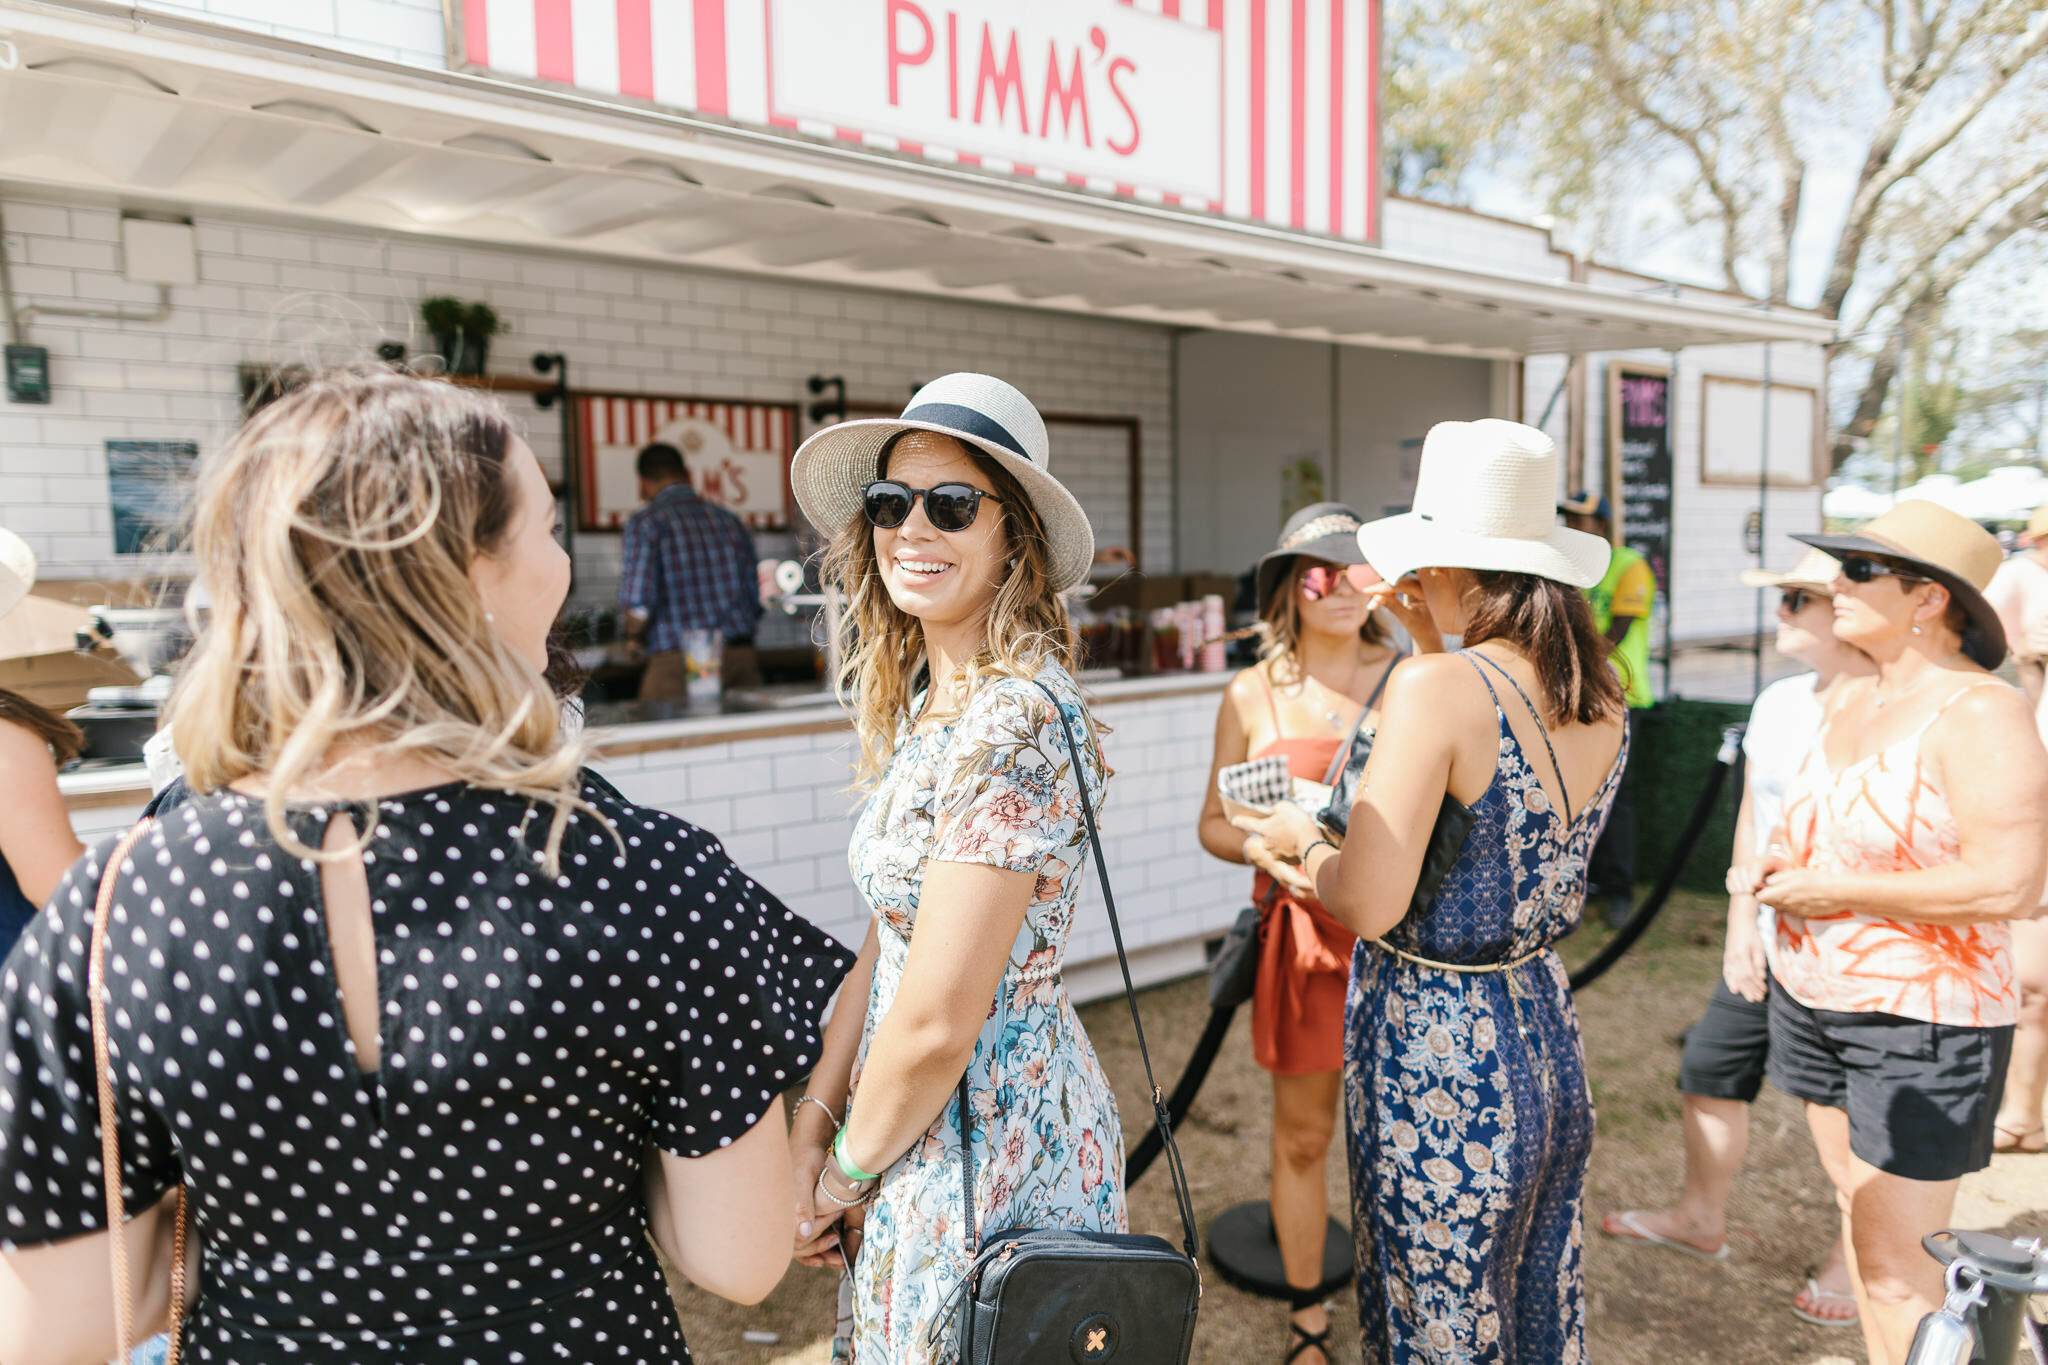 Win the ultimate Peninsula Picnic experience including a night at Jackalope Hotel